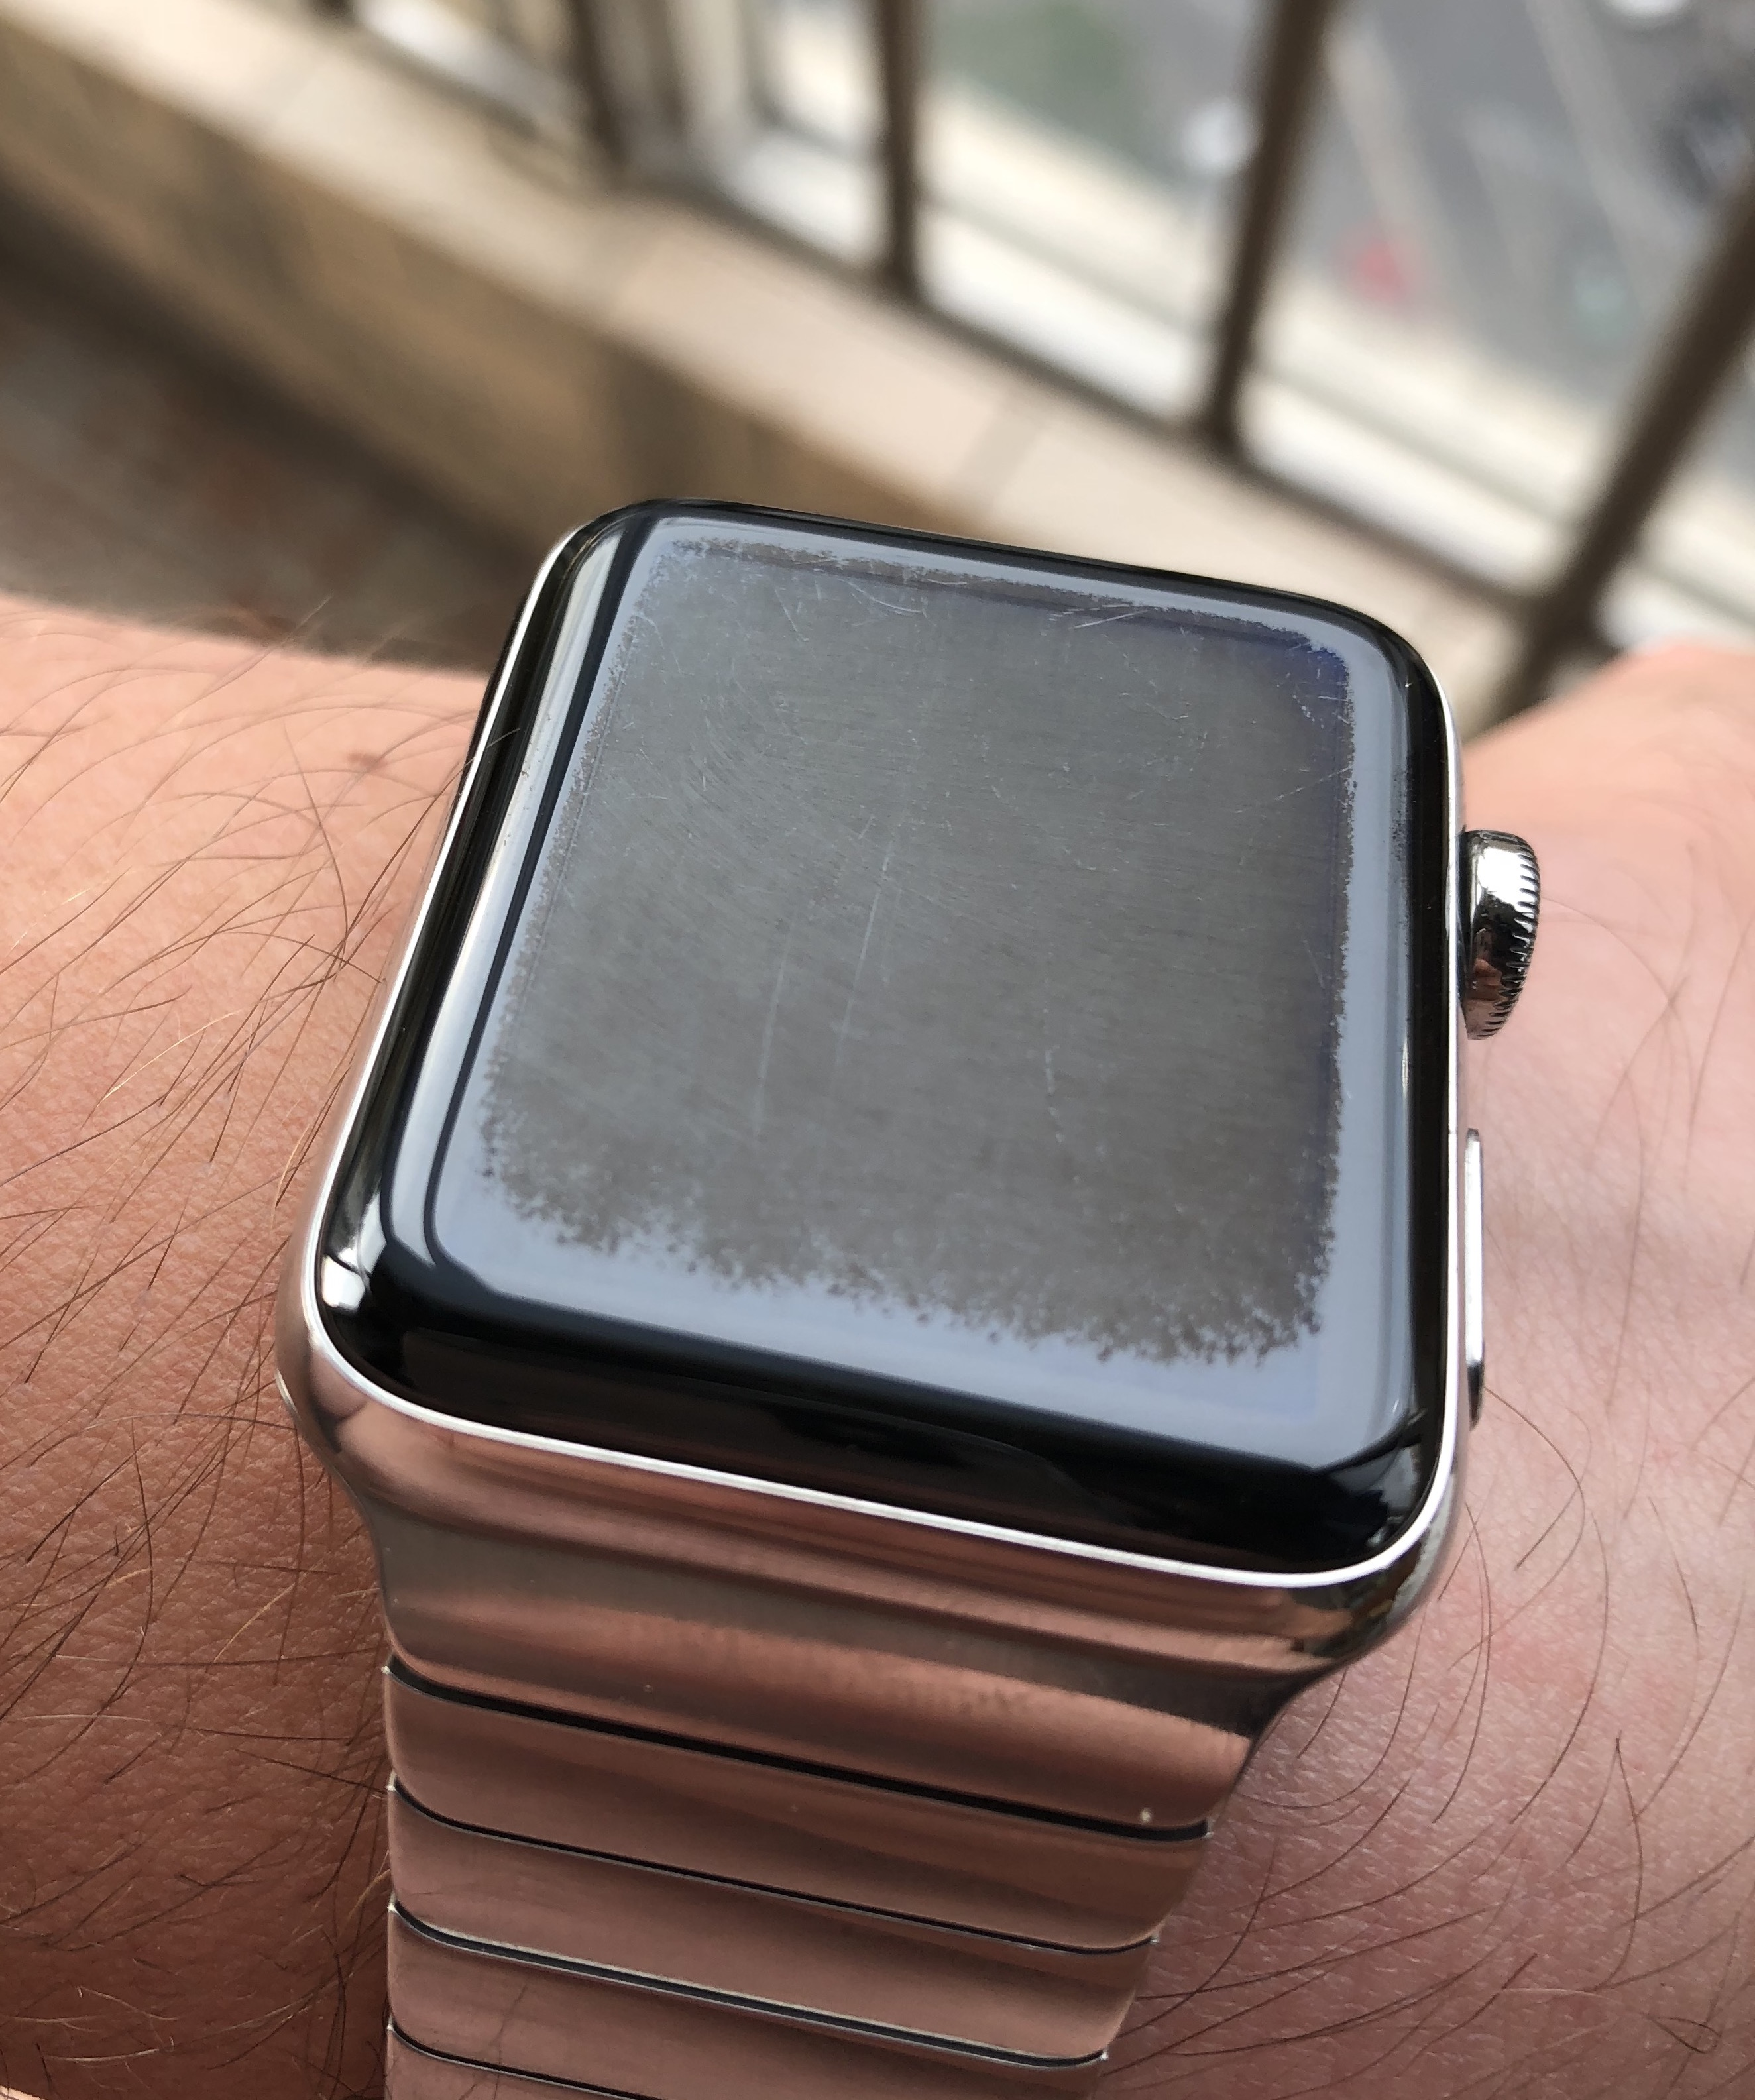 Apple Watch S3 lost the oleophobic coating - Apple Community